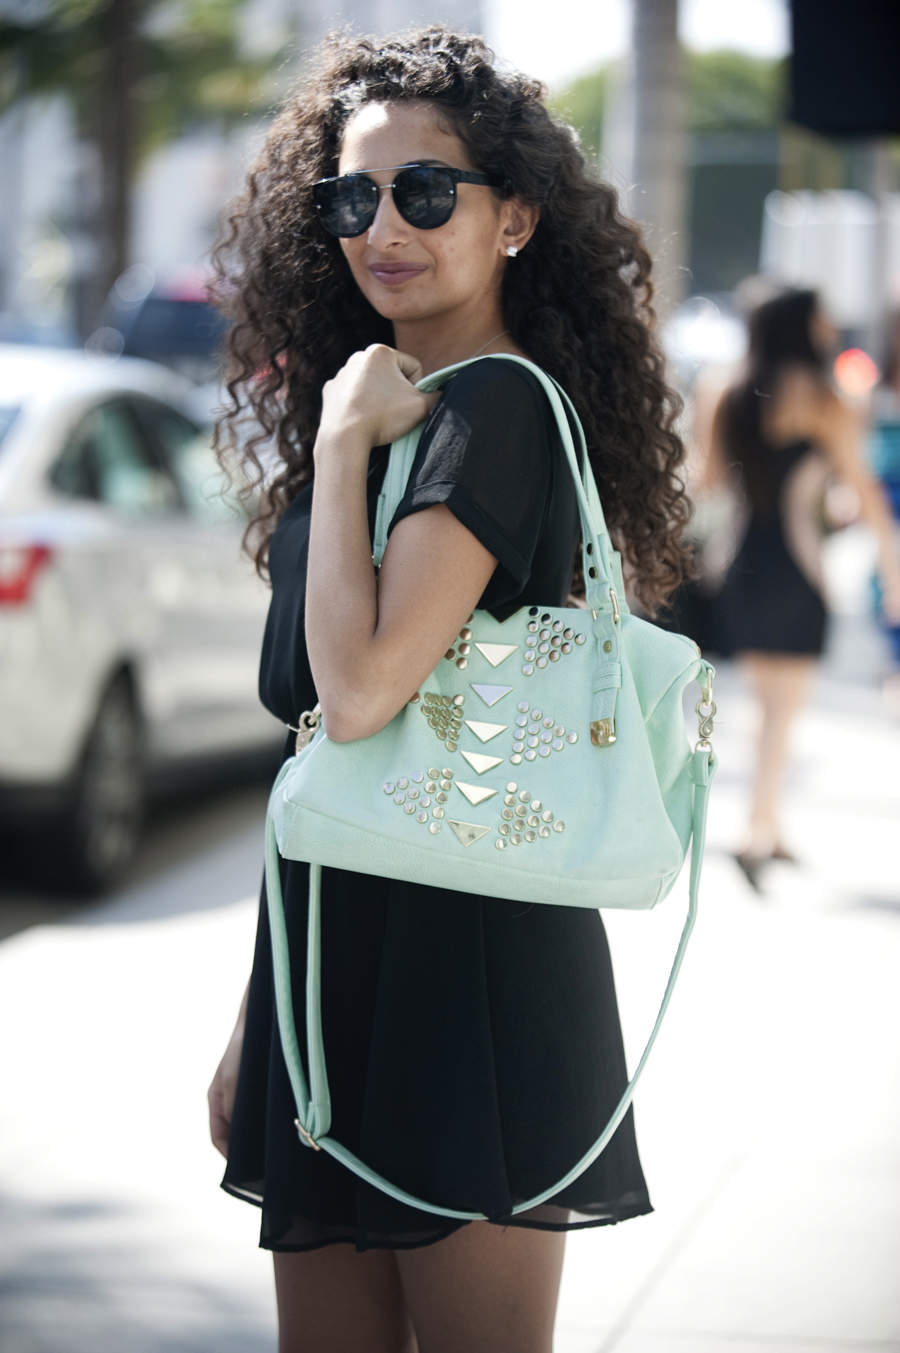 Dominique Aghassai, 21, wears a mint handbag from Shii and a black dress from Nordstrom.